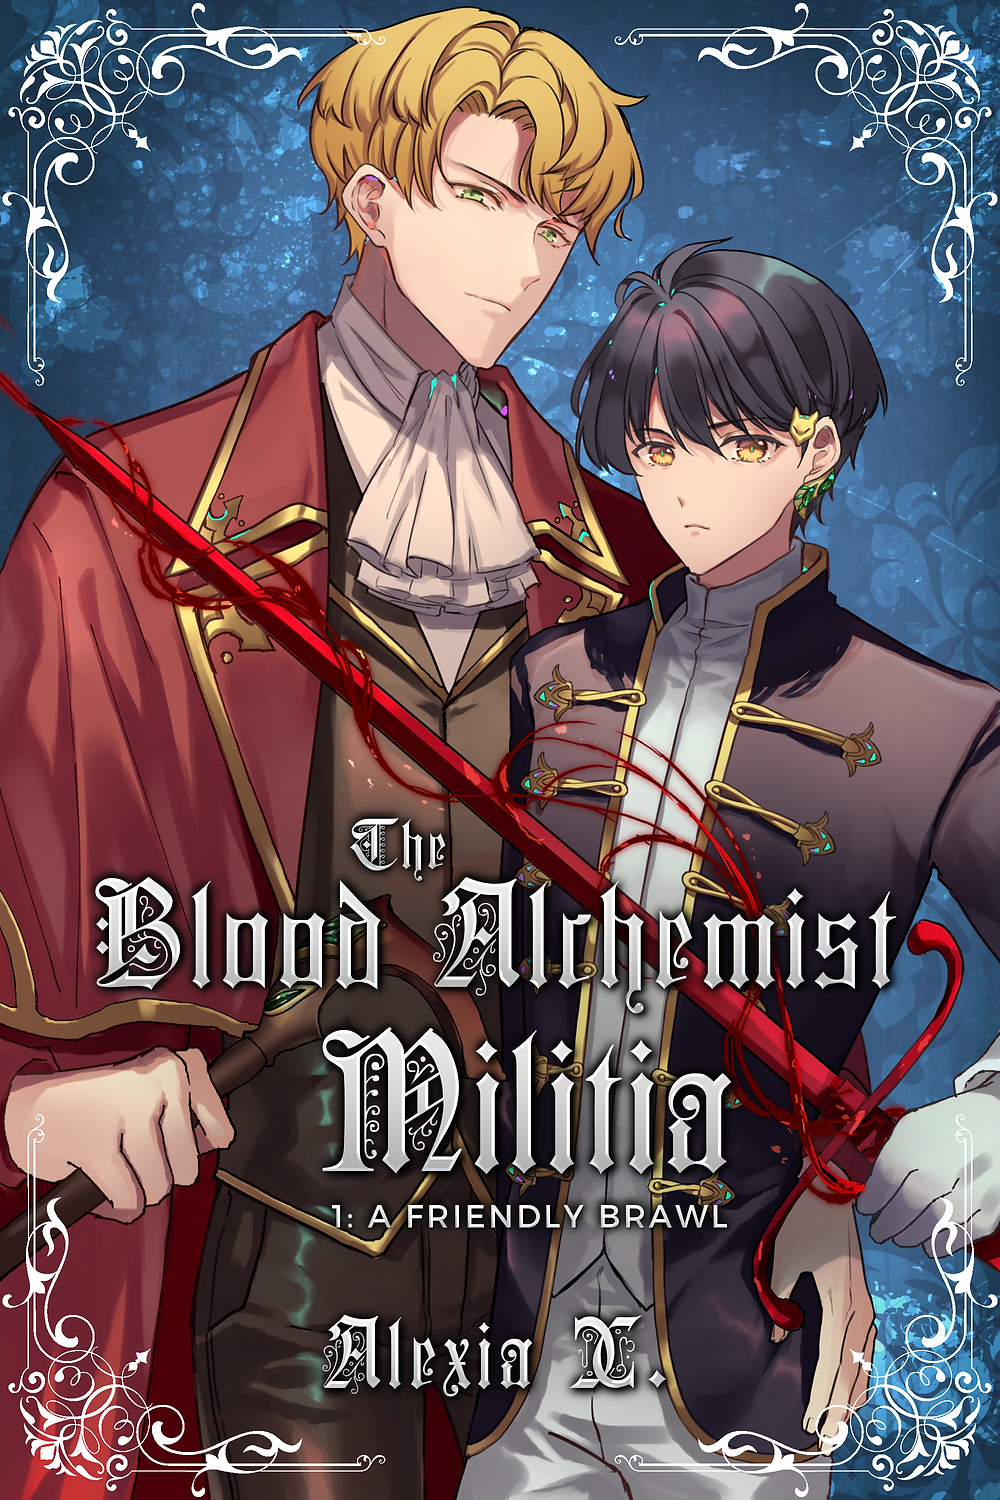 manga anime illustration of a beautiful bl yaoi couple in historical European Victorian English style clothing holding sword, beautiful uke hot seme, black hair male character, blond hair male character, novel cover of a steamy bl yaoi Gaslamp fantasy the blood alchemist militia author alexia x and alexia praks, bl boy's love yaoi mm fantasy novel